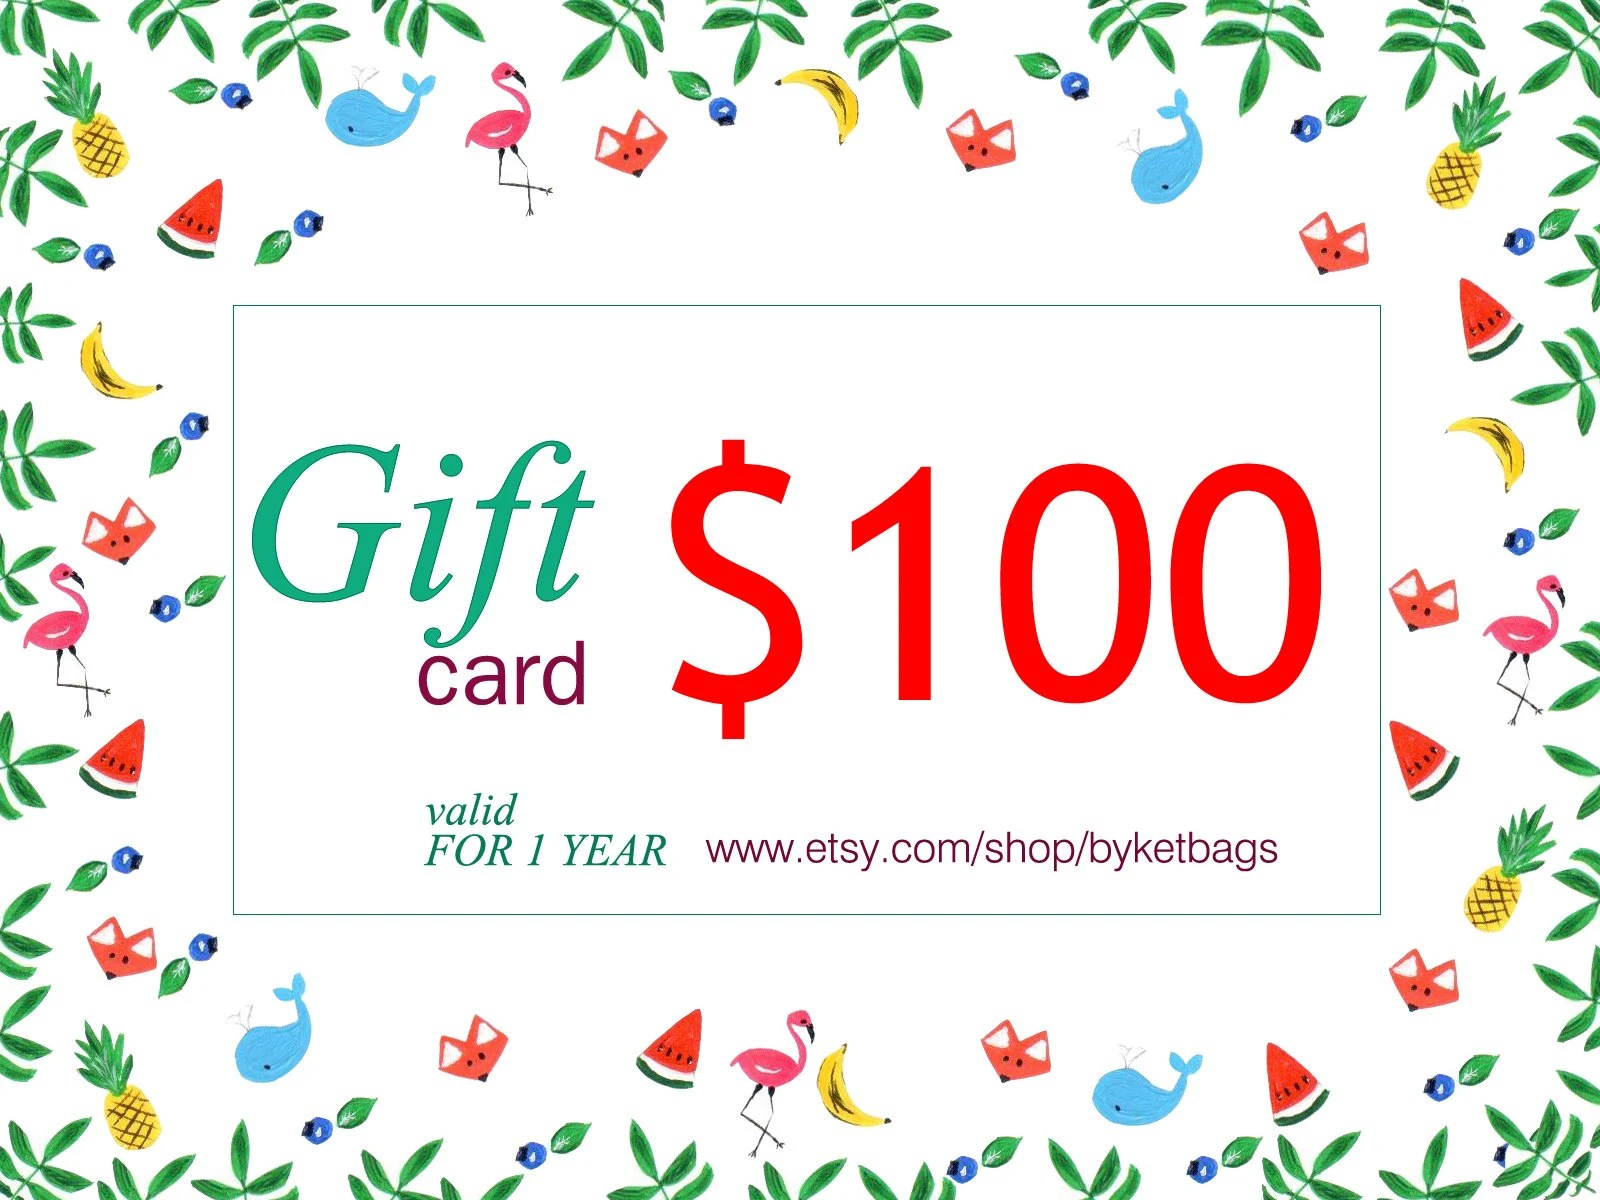 Gift card 100 Last minute gift Personal gift card Christmas Etsy